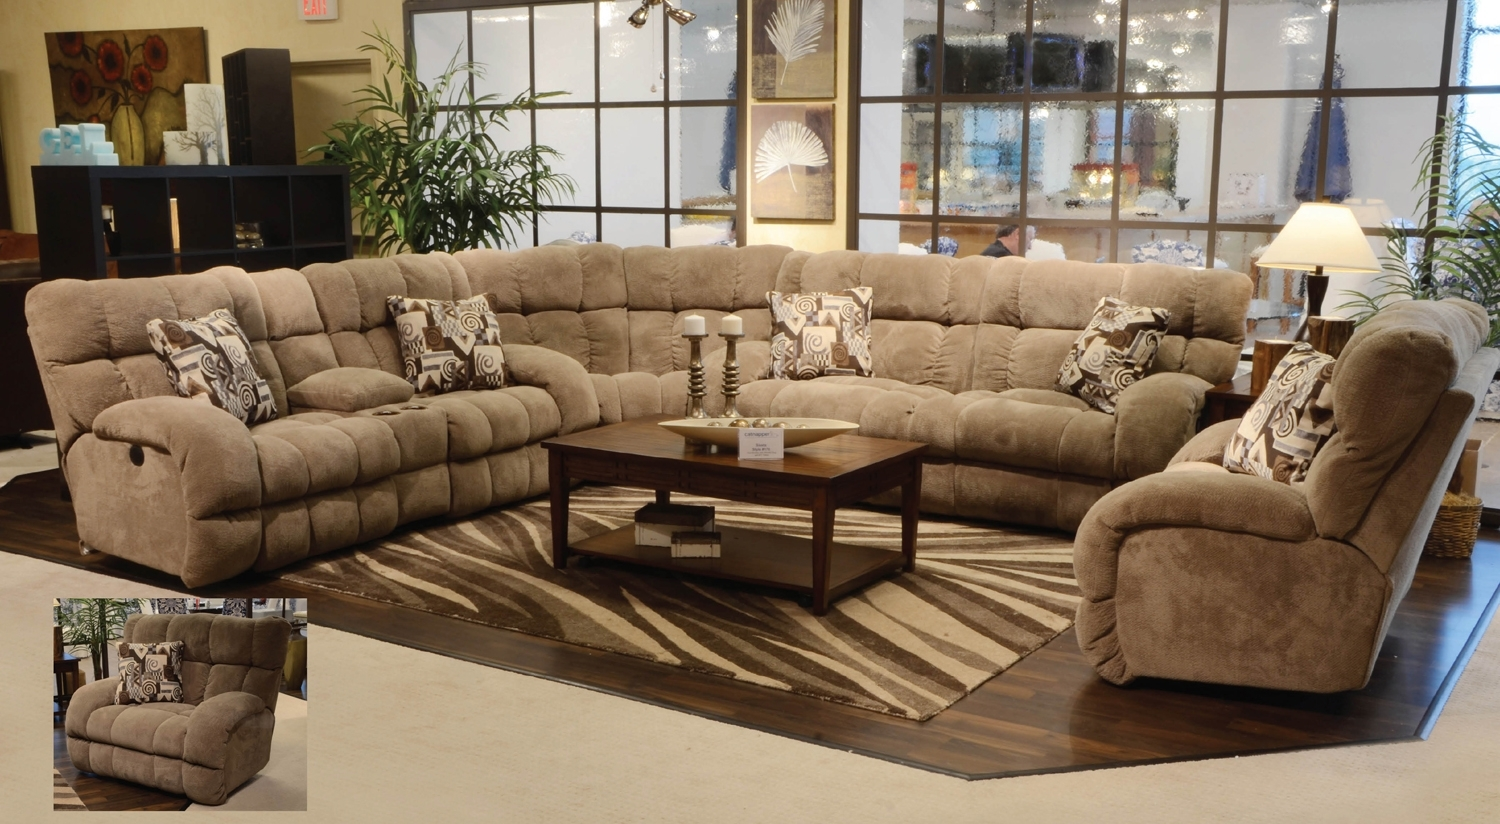 12 Photo of Extra Large Sectional Sofas